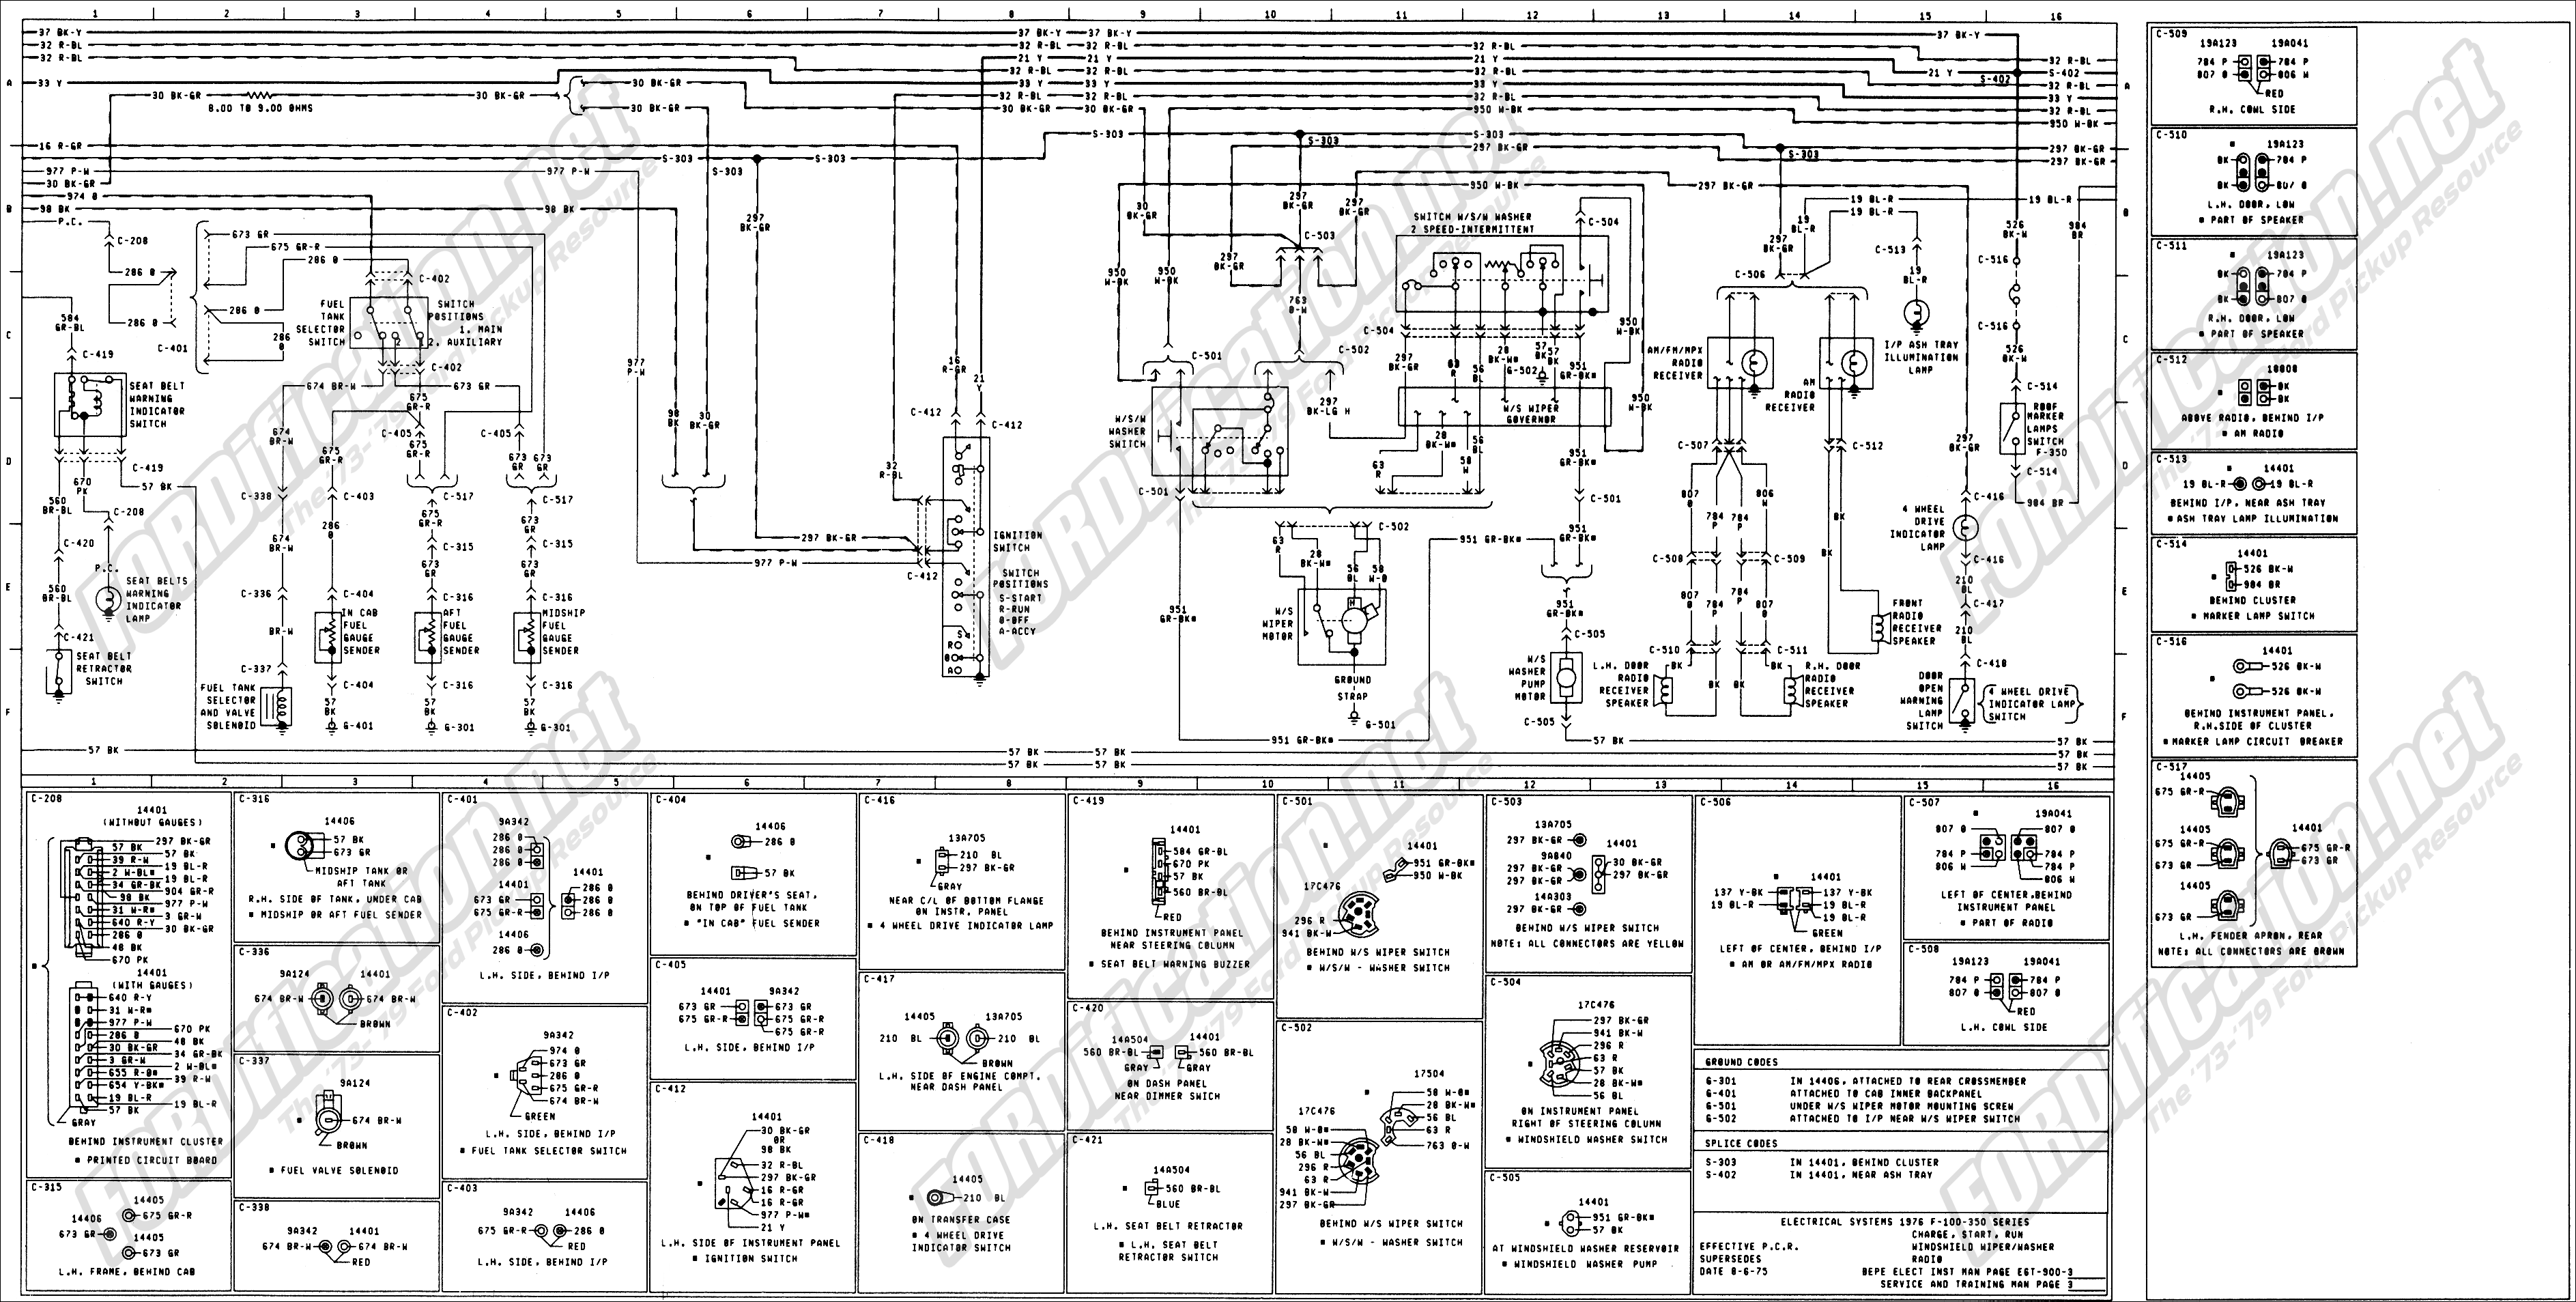 1996 Ford Transmission Wiring Diagram Starting Know About Ranger Diagrams 1973 1979 Truck Schematics